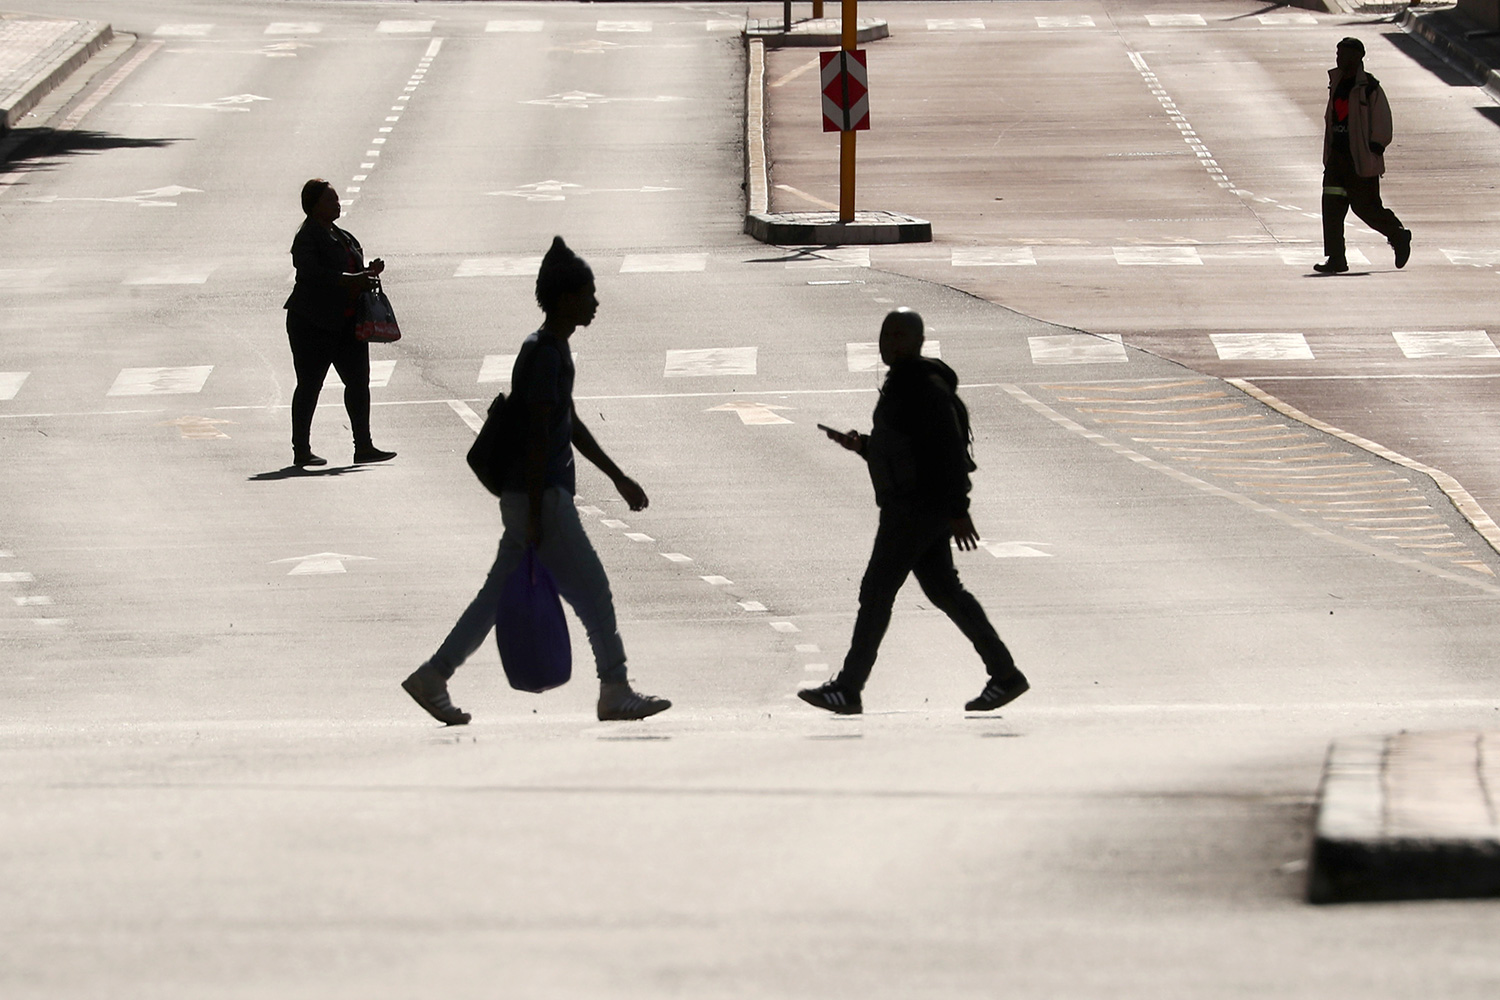 People cross normally busy—now largely empty—Adderley Street in central Cape Town, South Africa, on April 14, 2020, during the 21-day nationwide lockdown aimed at limiting the spread of coronavirus. This is a stunning photo showing a broad main thoroughfare that is completely bereft of cars. Four people are seen crossing the wide street, each silhouetted against the early or late sun reflecting off the asphalt pavement. REUTERS/Mike Hutchings